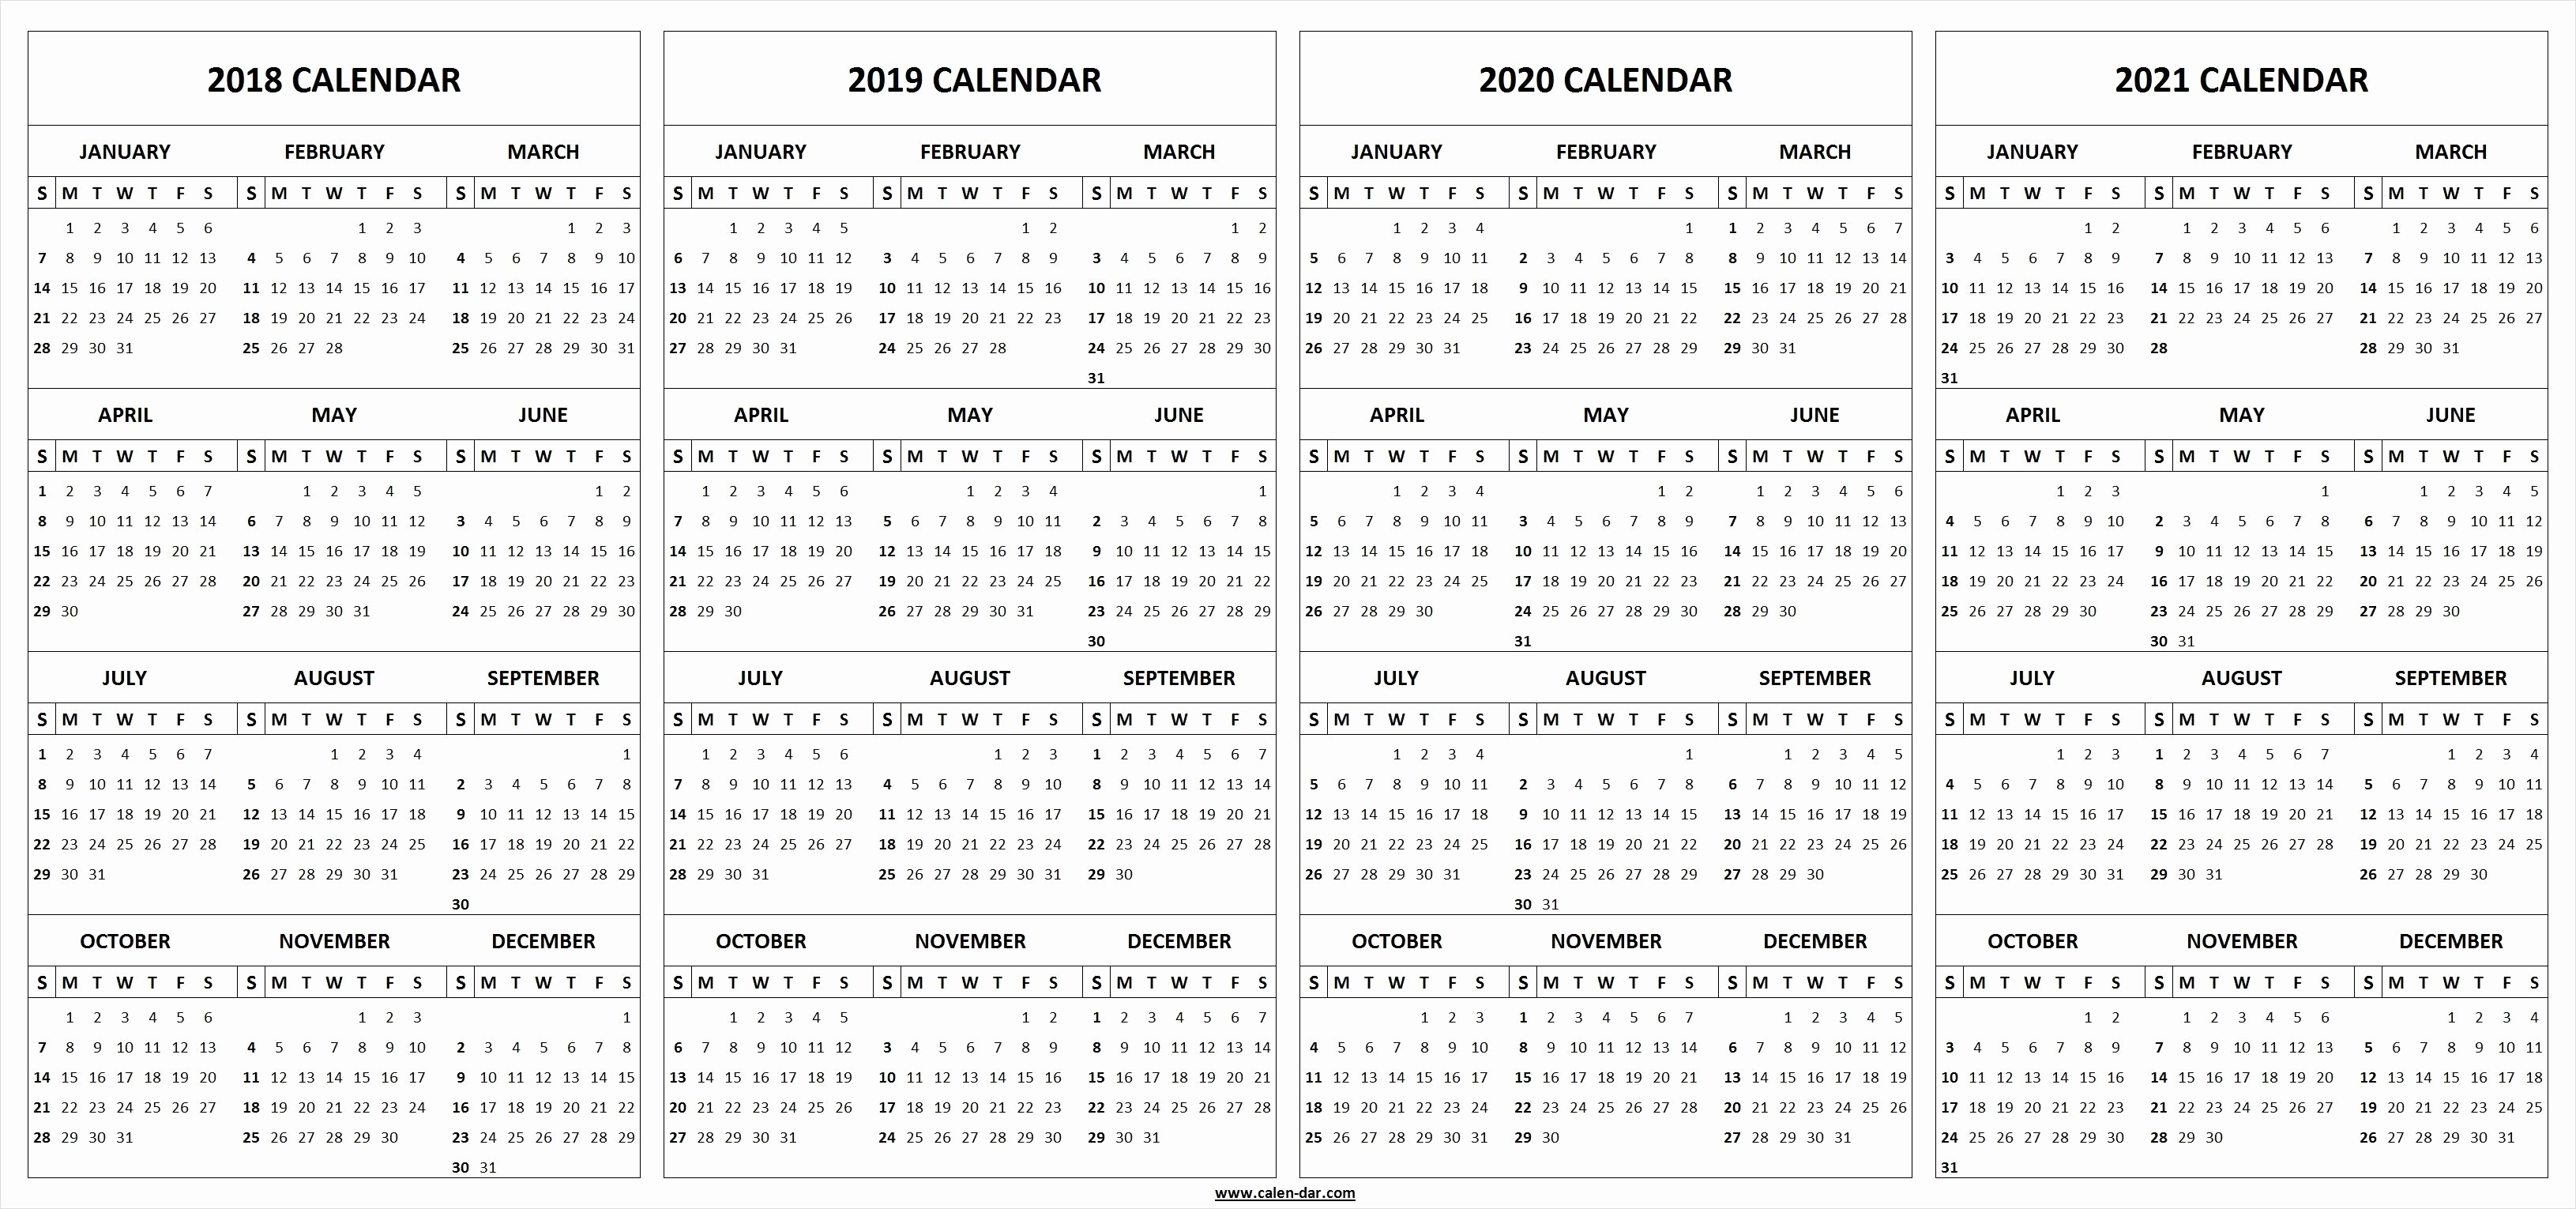 2019 and 2020 Calendar Printable Beautiful 4 Four Year 2018 2019 2020 2021 Calendar Printable